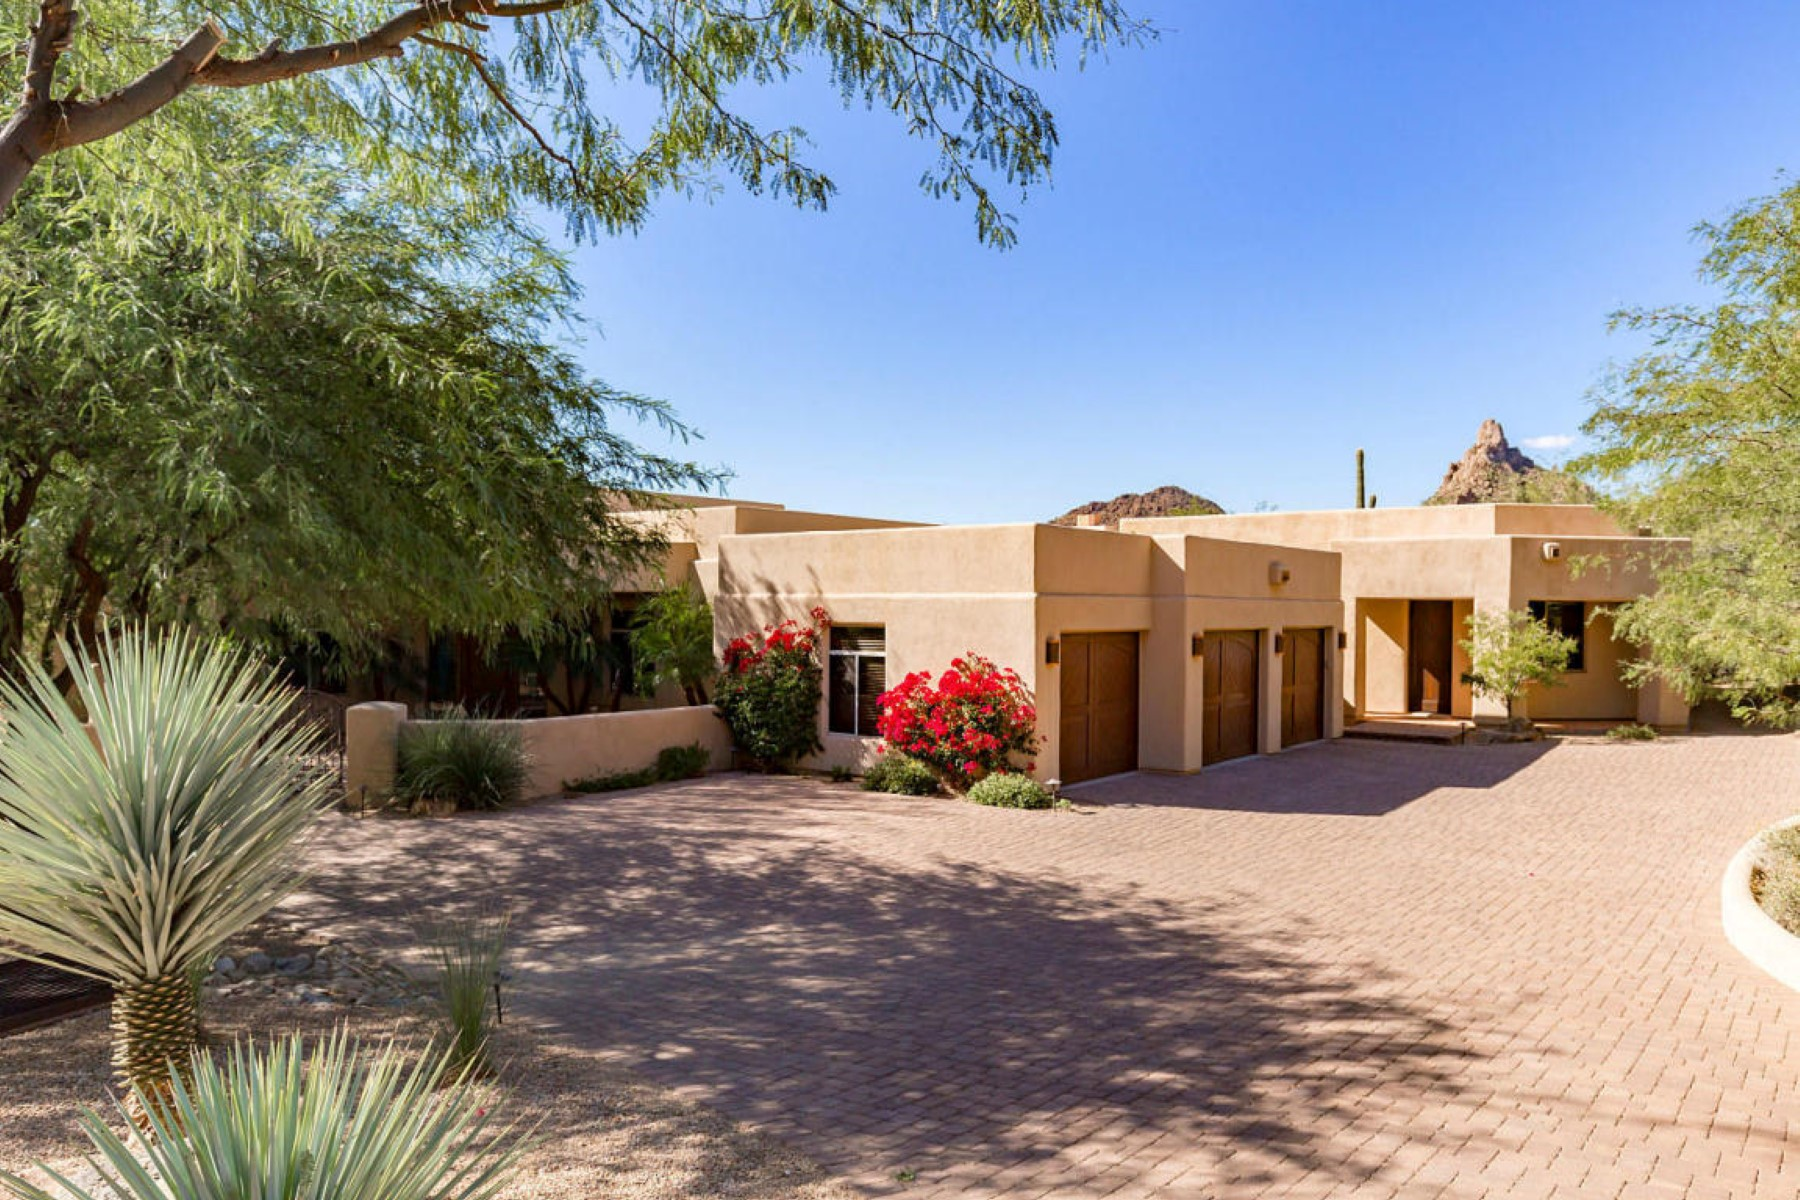 Single Family Home for Sale at Desert inspired residence in the guard gated community of Troon Mountain 25770 N 106th Way Scottsdale, Arizona, 85255 United States